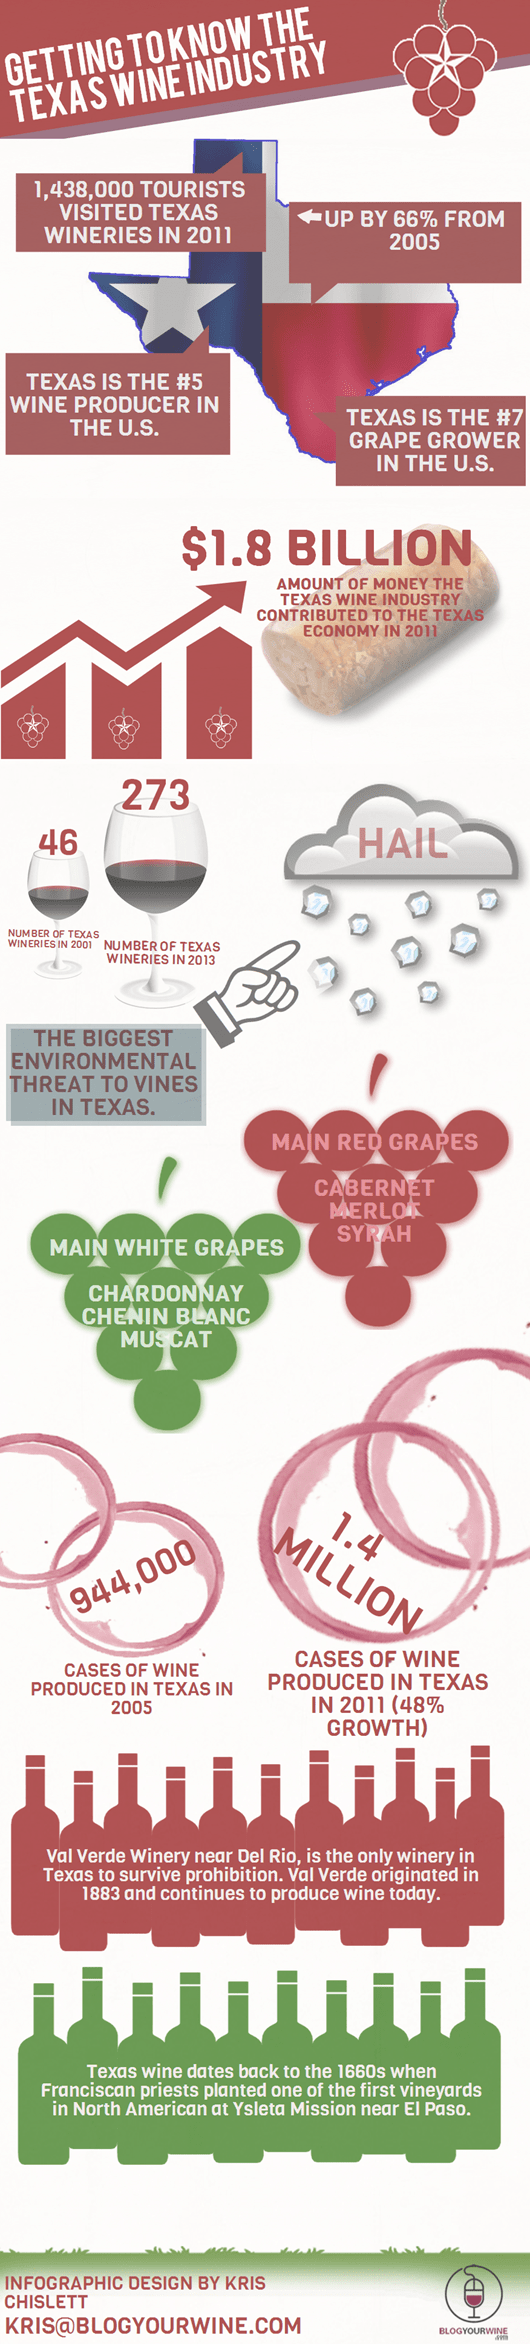 Getting to Know the Texas Wine Industry- INFOGRAPHIC